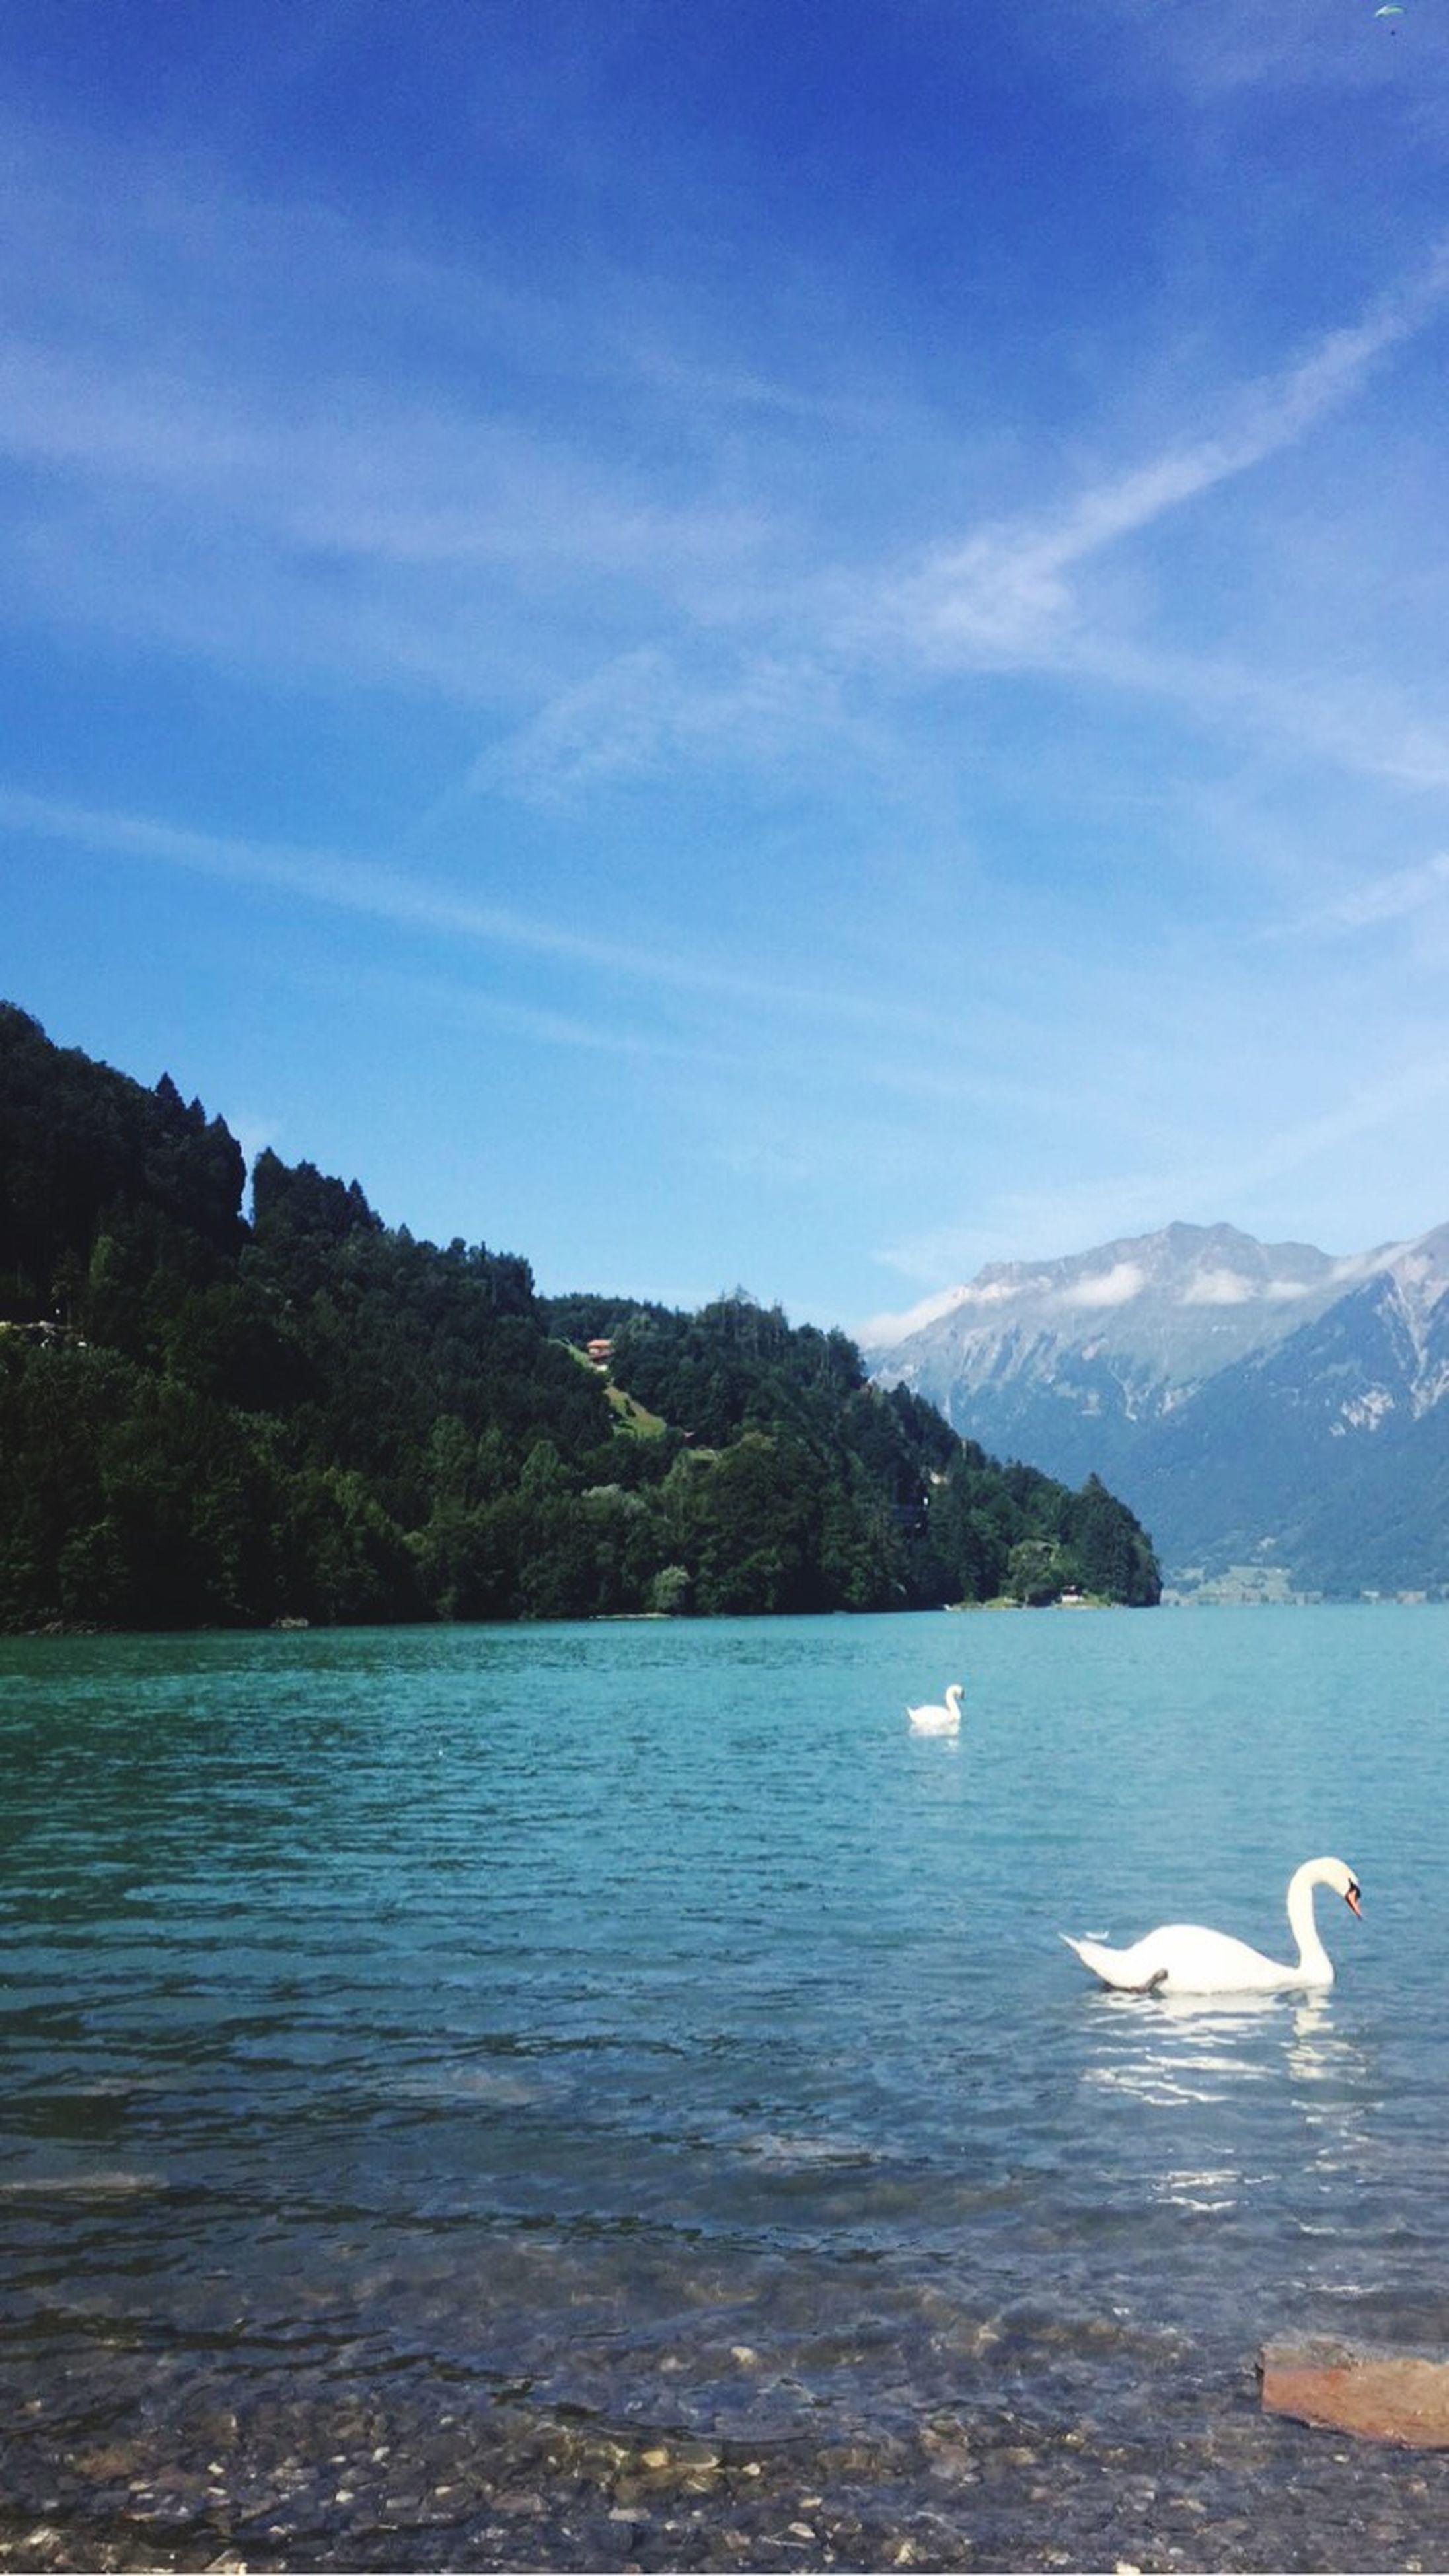 water, bird, animal themes, mountain, lake, animals in the wild, wildlife, tranquil scene, waterfront, scenics, tranquility, sky, beauty in nature, mountain range, swimming, nature, rippled, blue, swan, idyllic